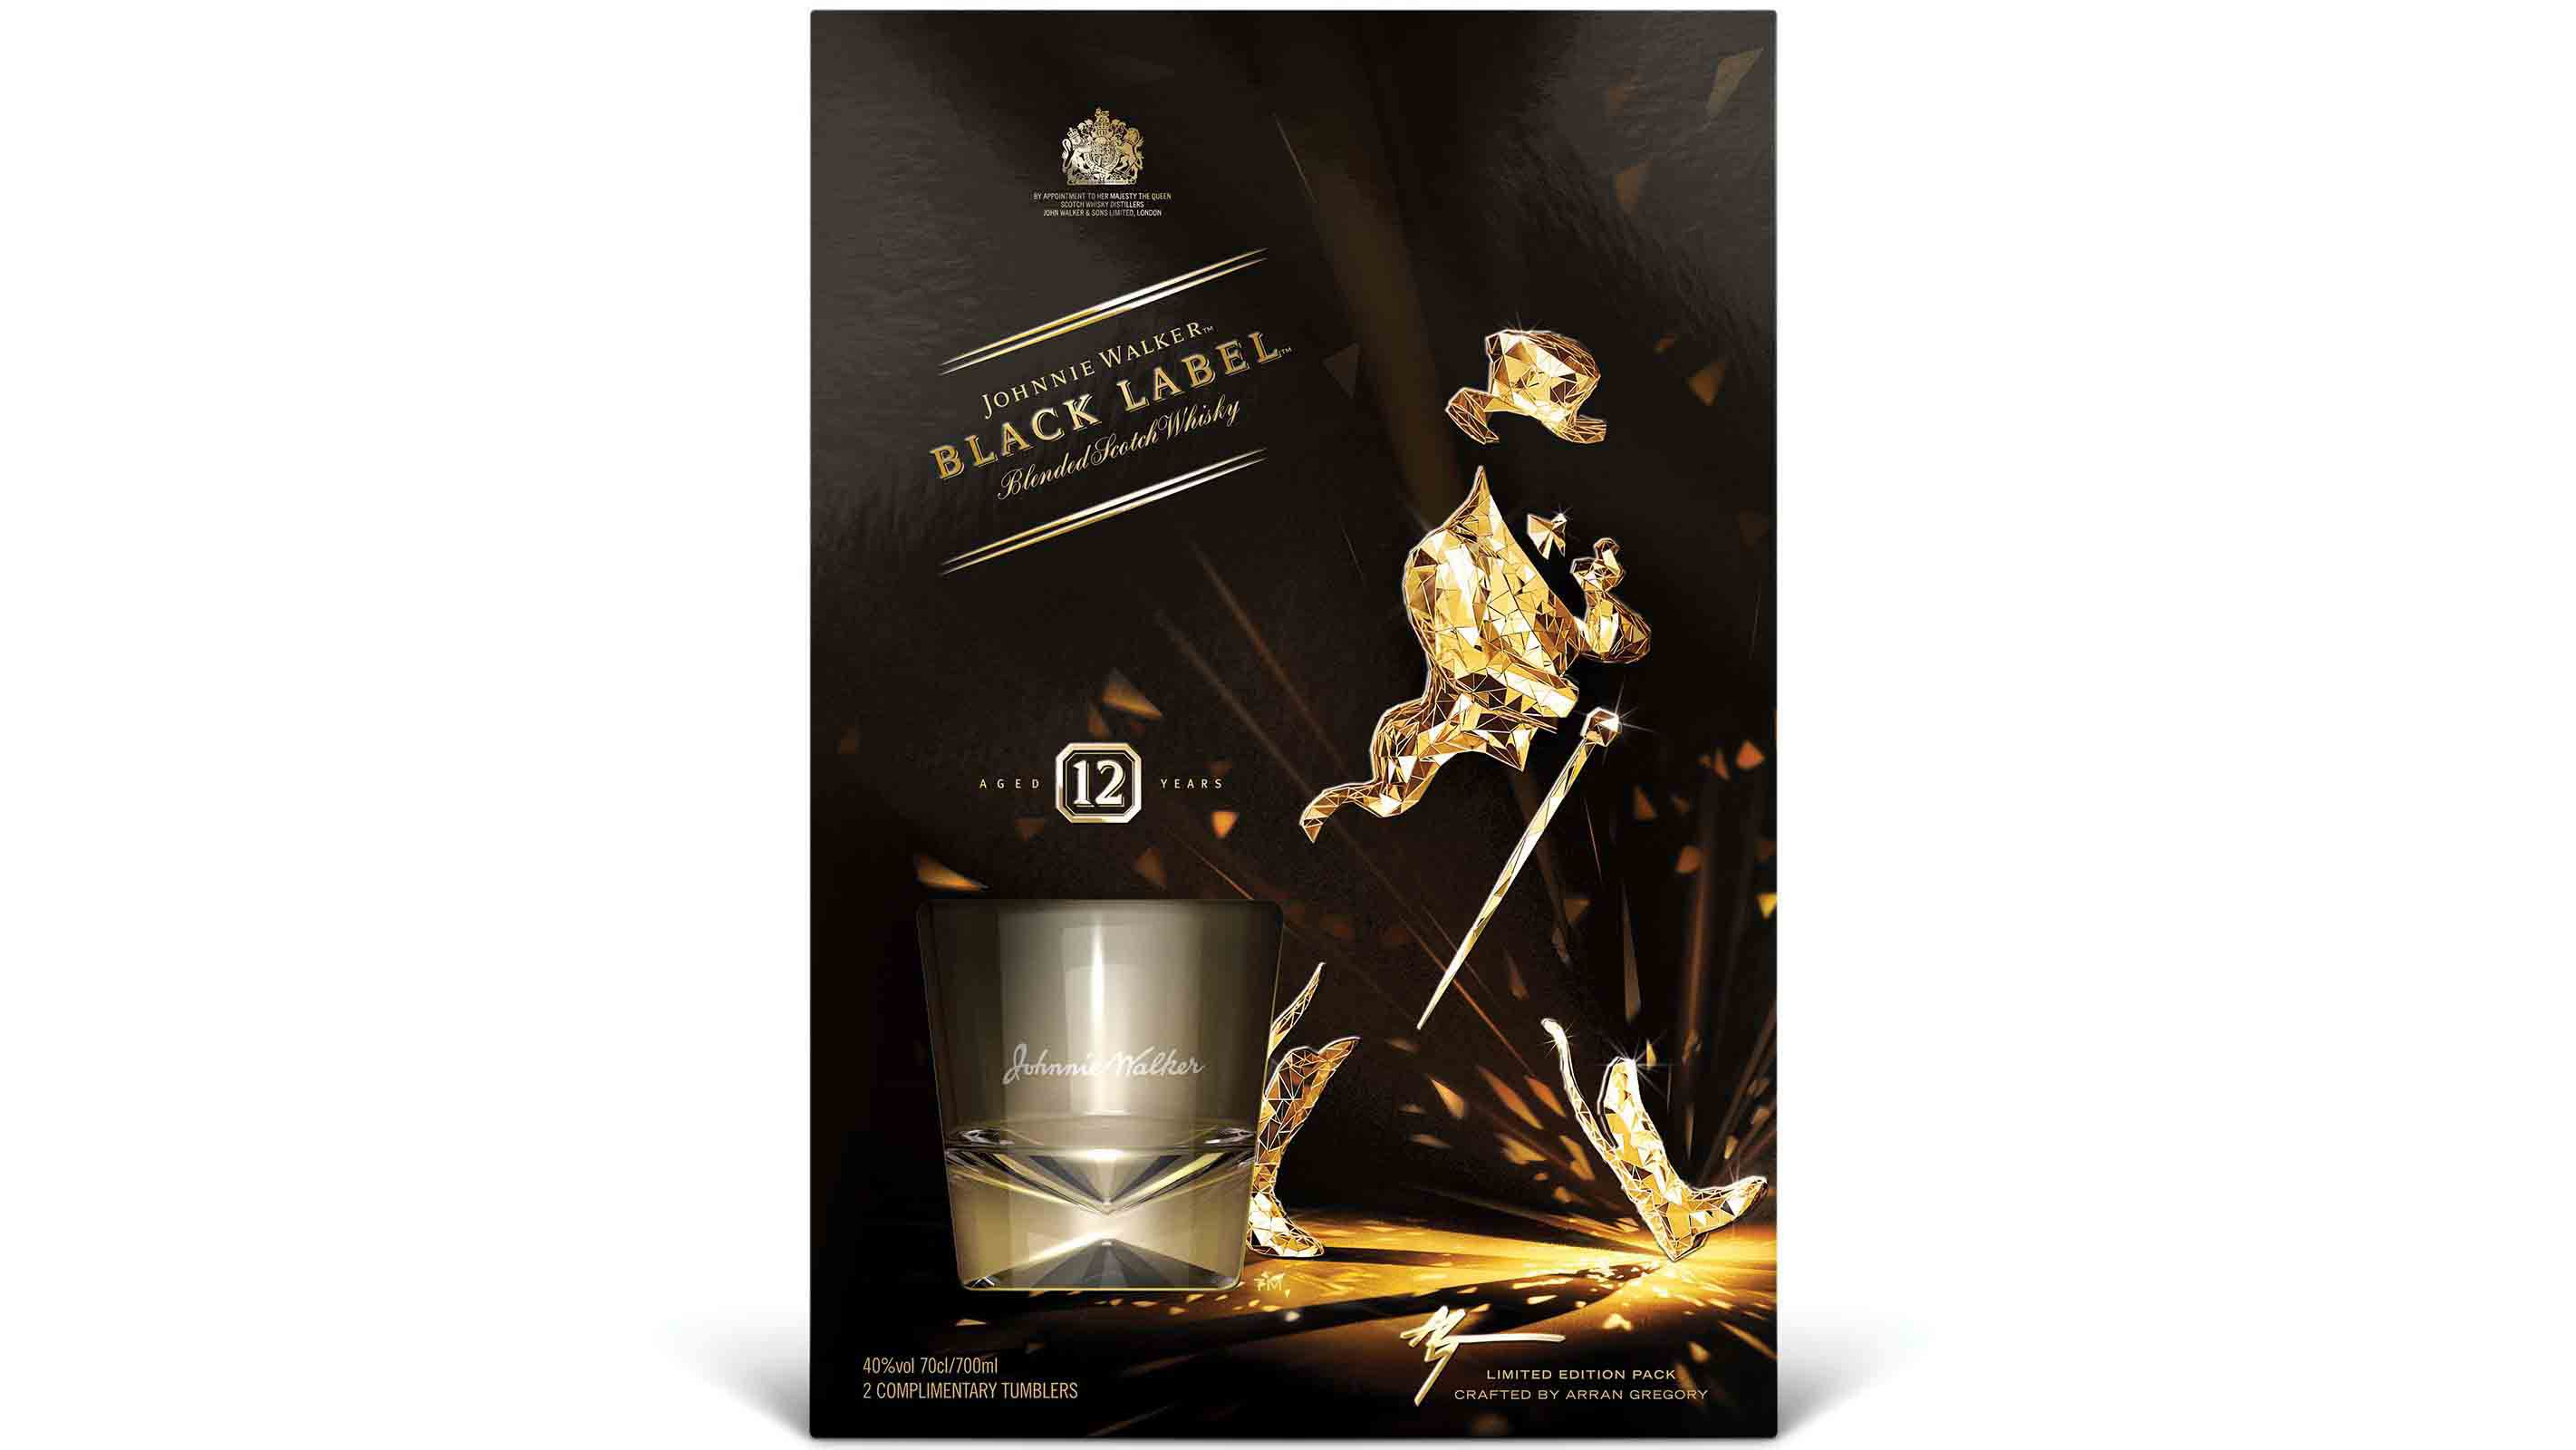 Pack de Johnnie Walker Black Label Limited Edition diseñado por Arran Gregory